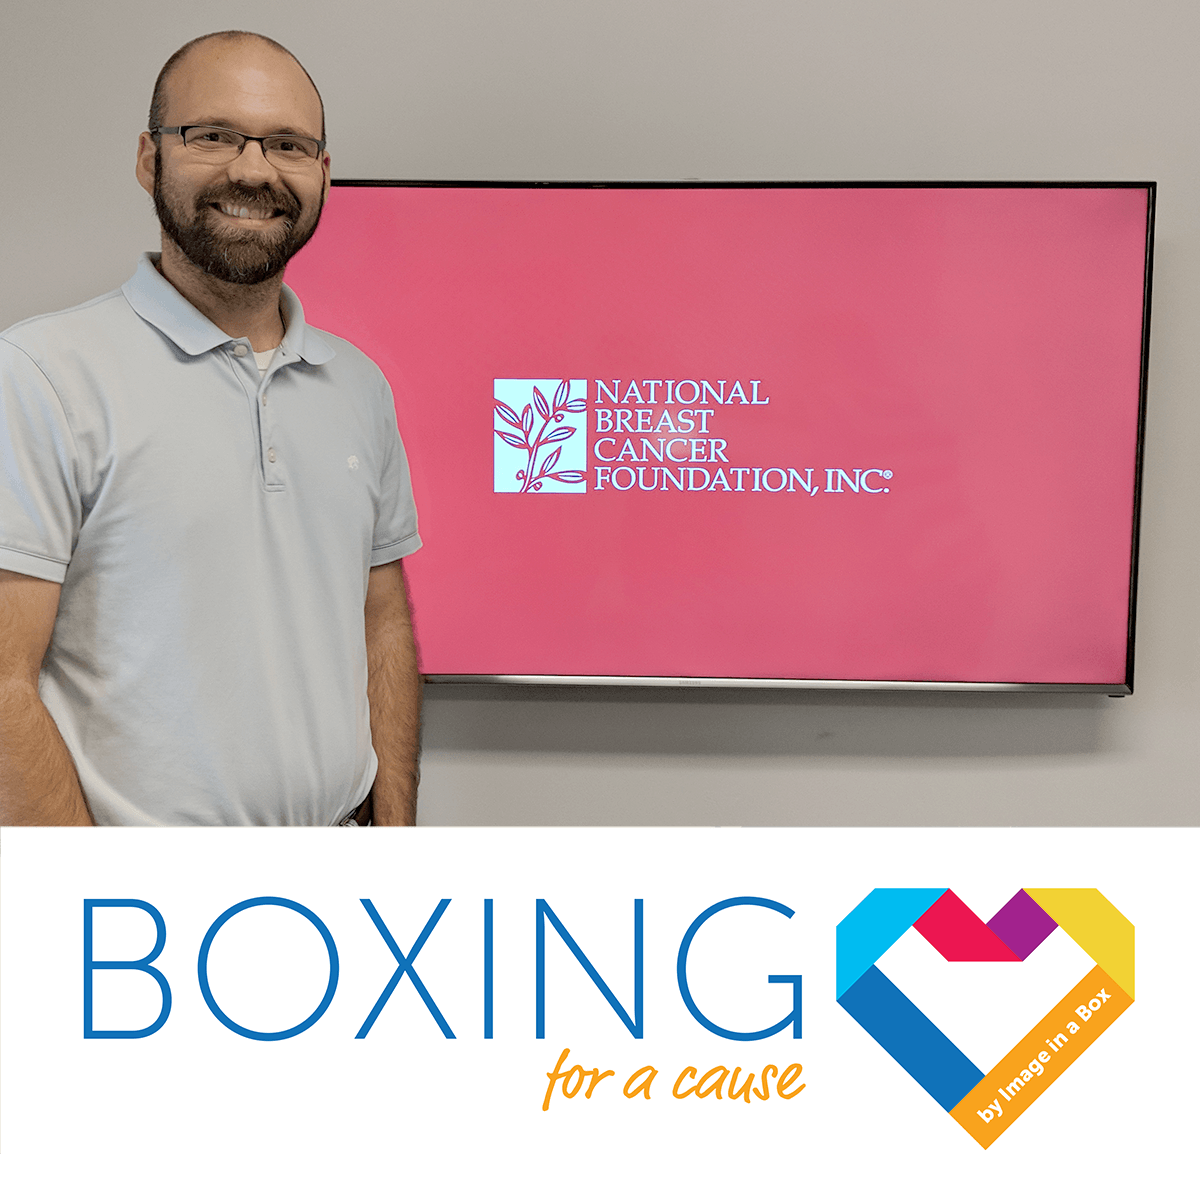 Featured image on Boxing for a Cause - National Breast Cancer Foundation, Inc. - October 2018